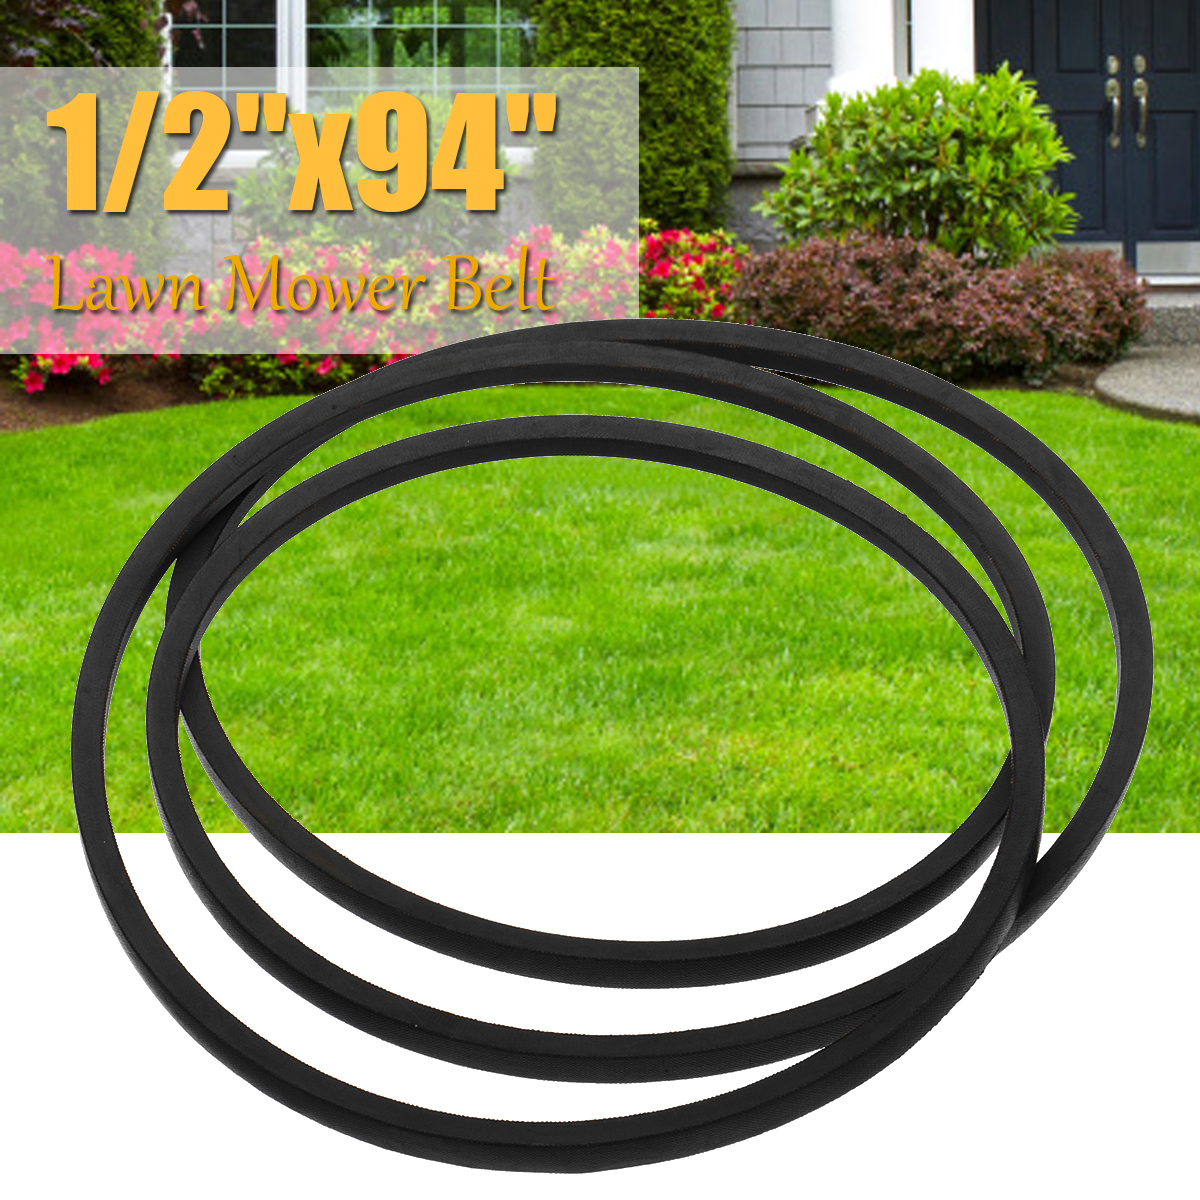 A92 Yard Machine Lawn Mower Belt 13mm 1/2